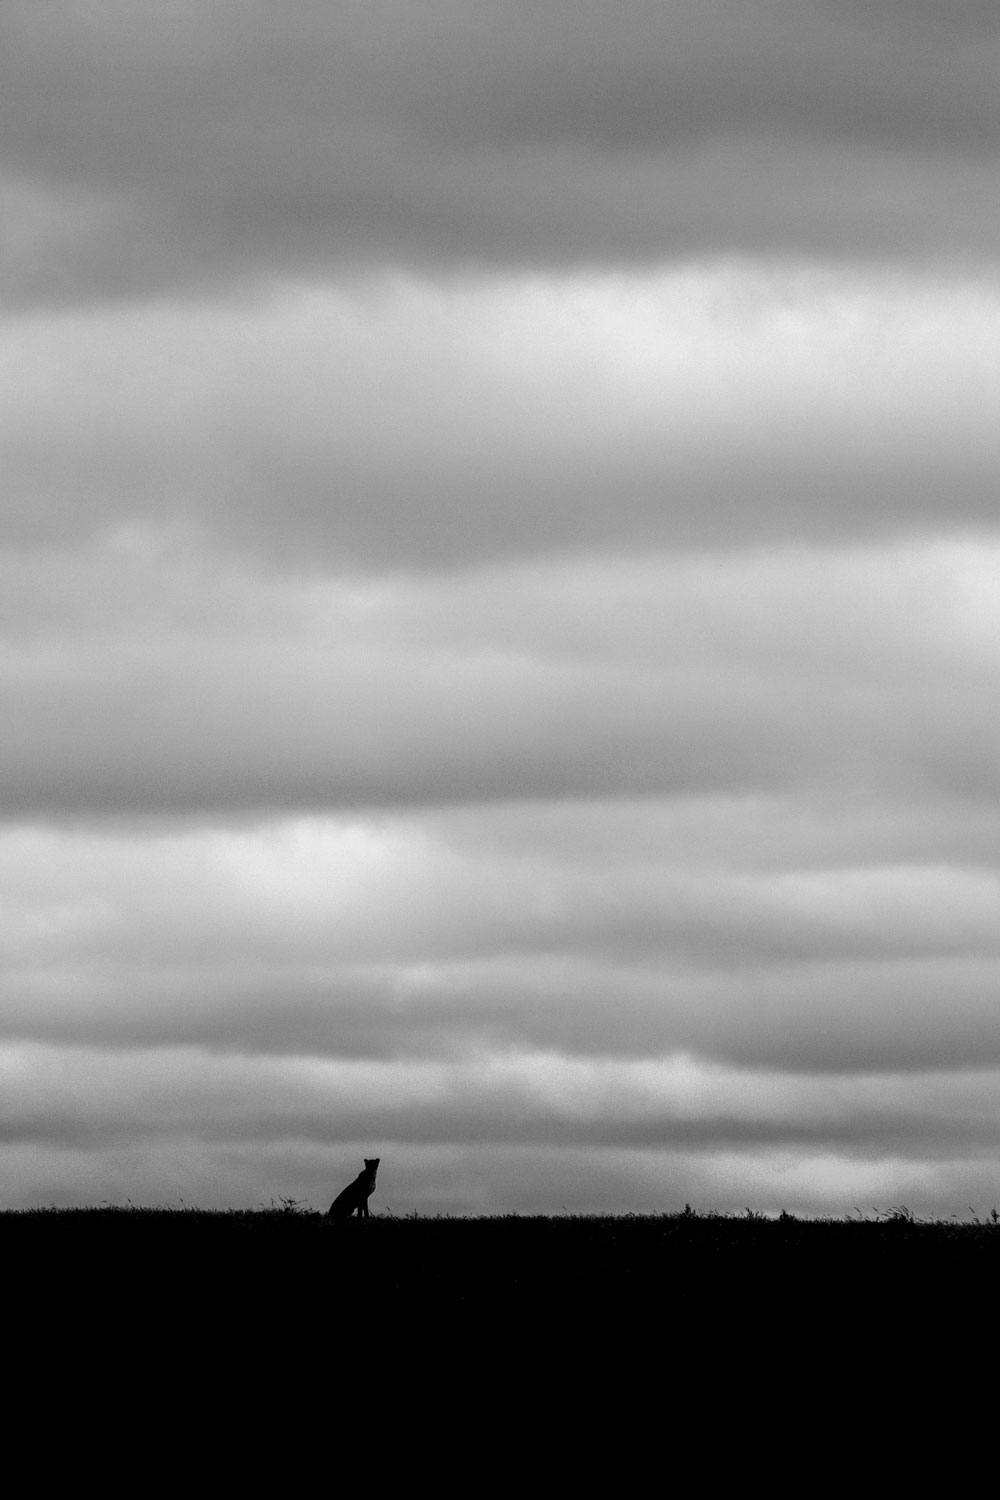 Silhouette of cheetah against cloudy sky in black and white